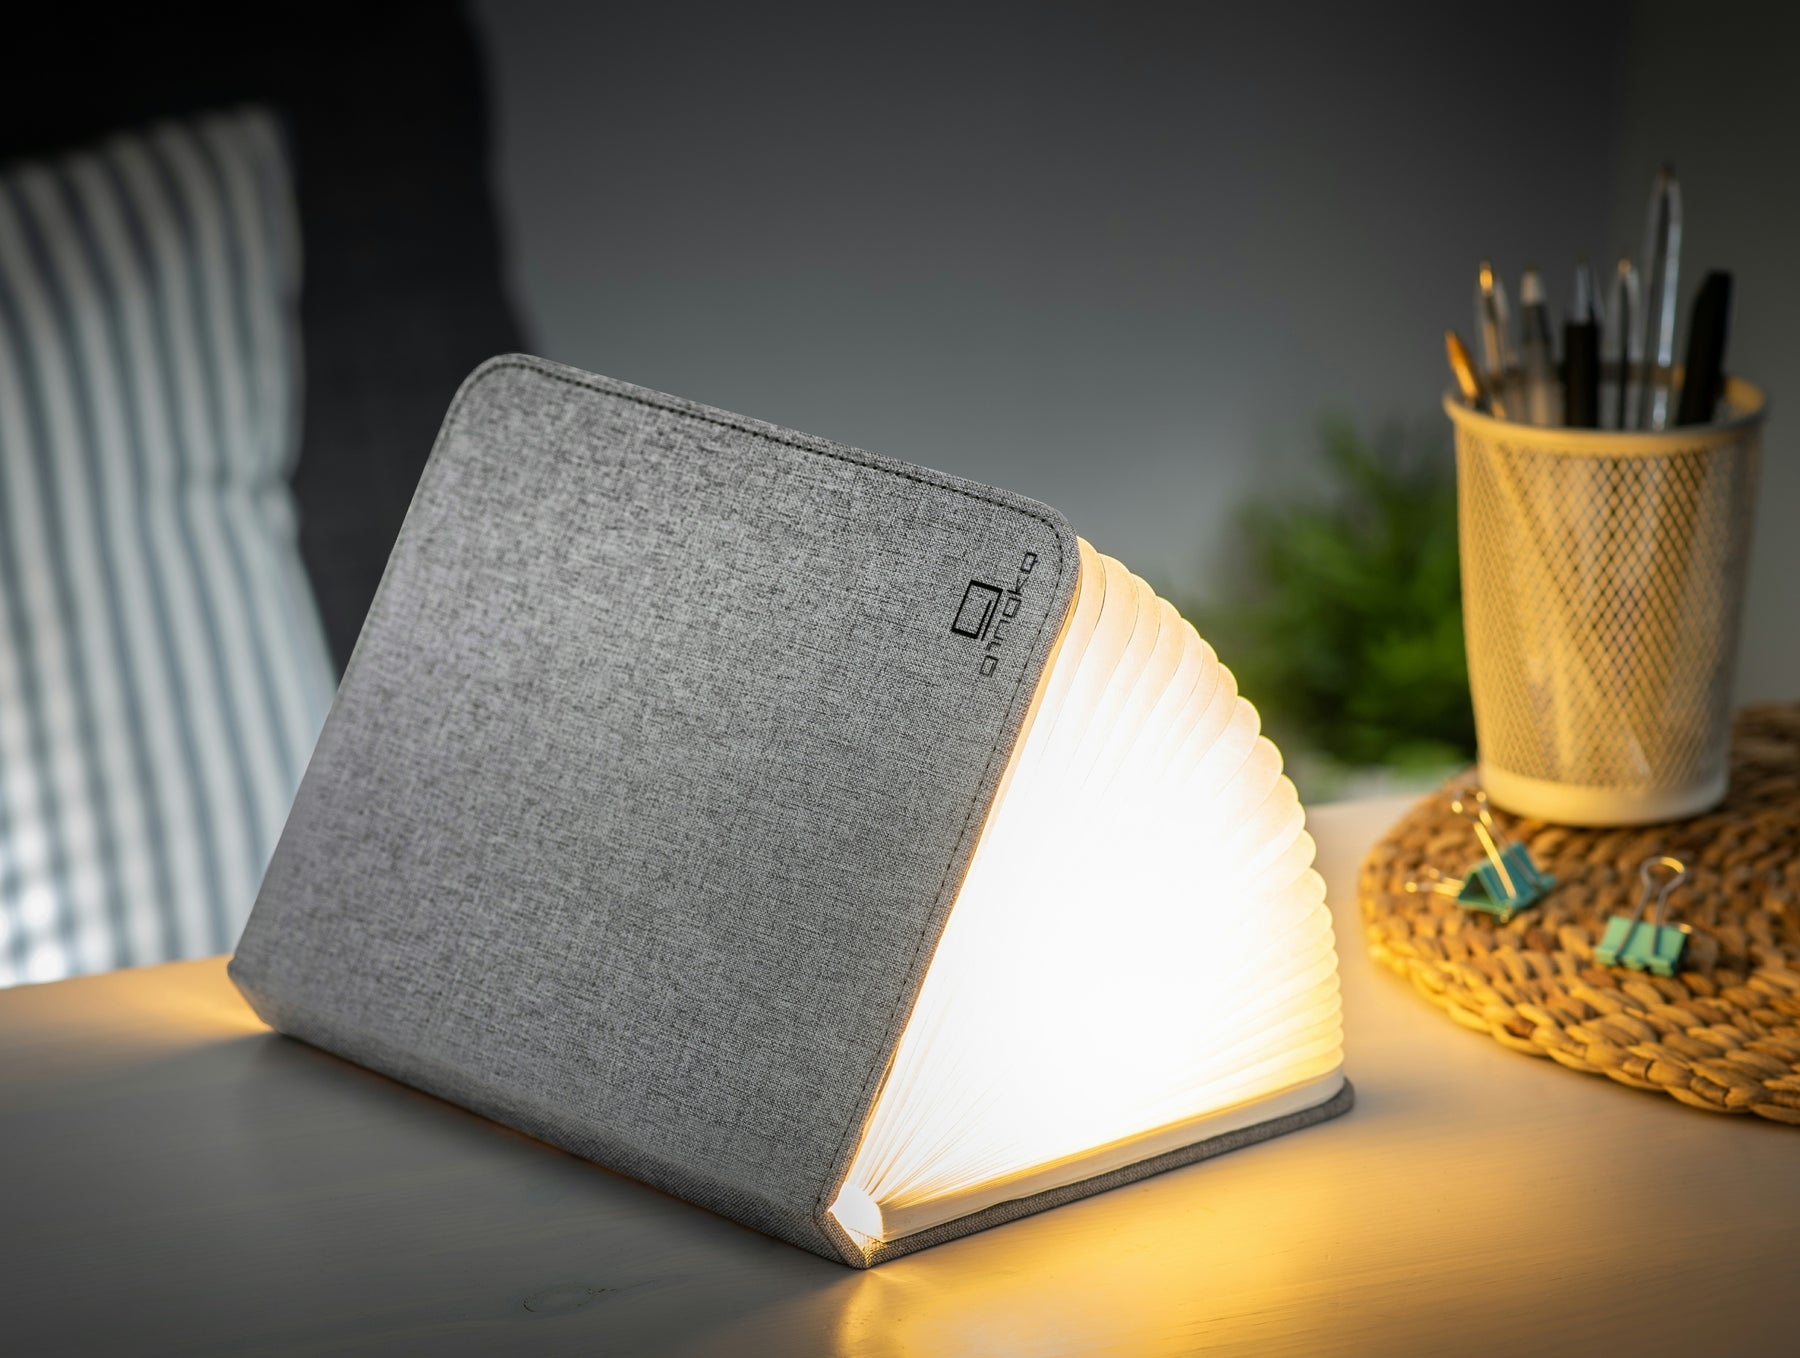 Smart Book Lights